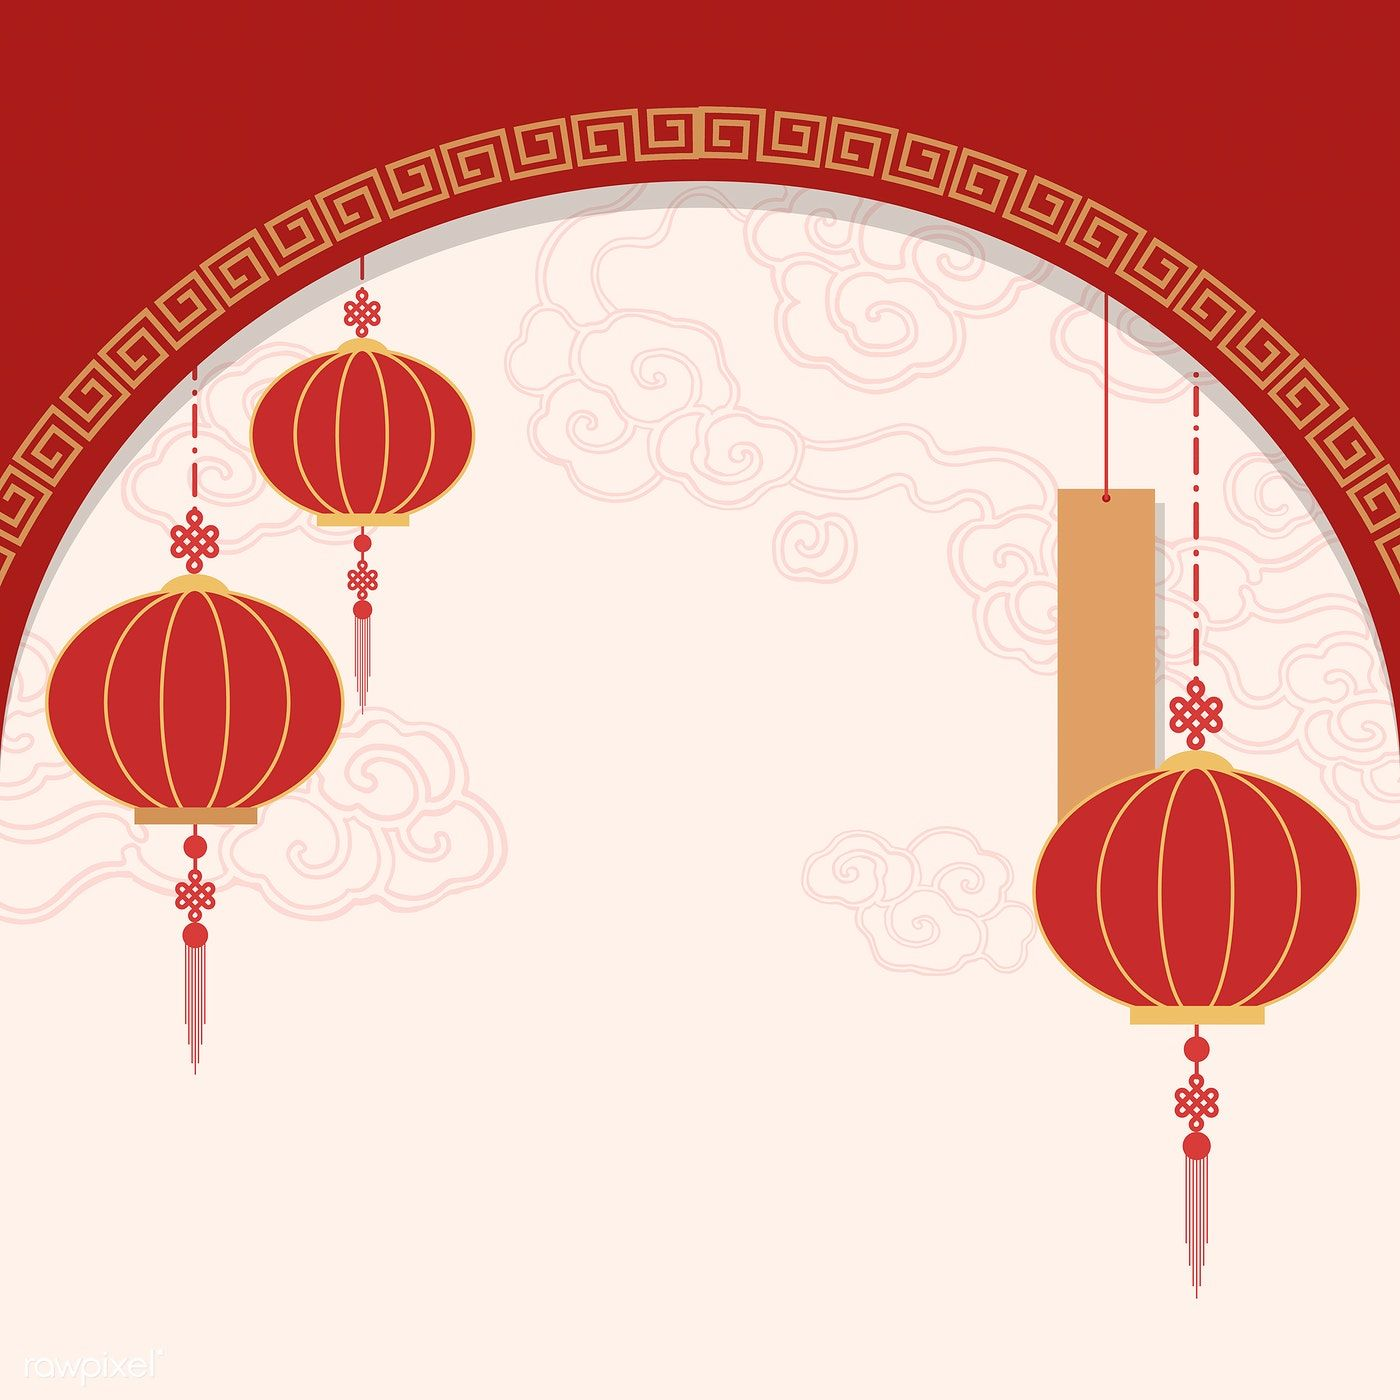 Download Premium Vector Of Chinese New Year 2019 Greeting Background 555247 Chinese Background Chinese New Year Background Chinese New Year Images